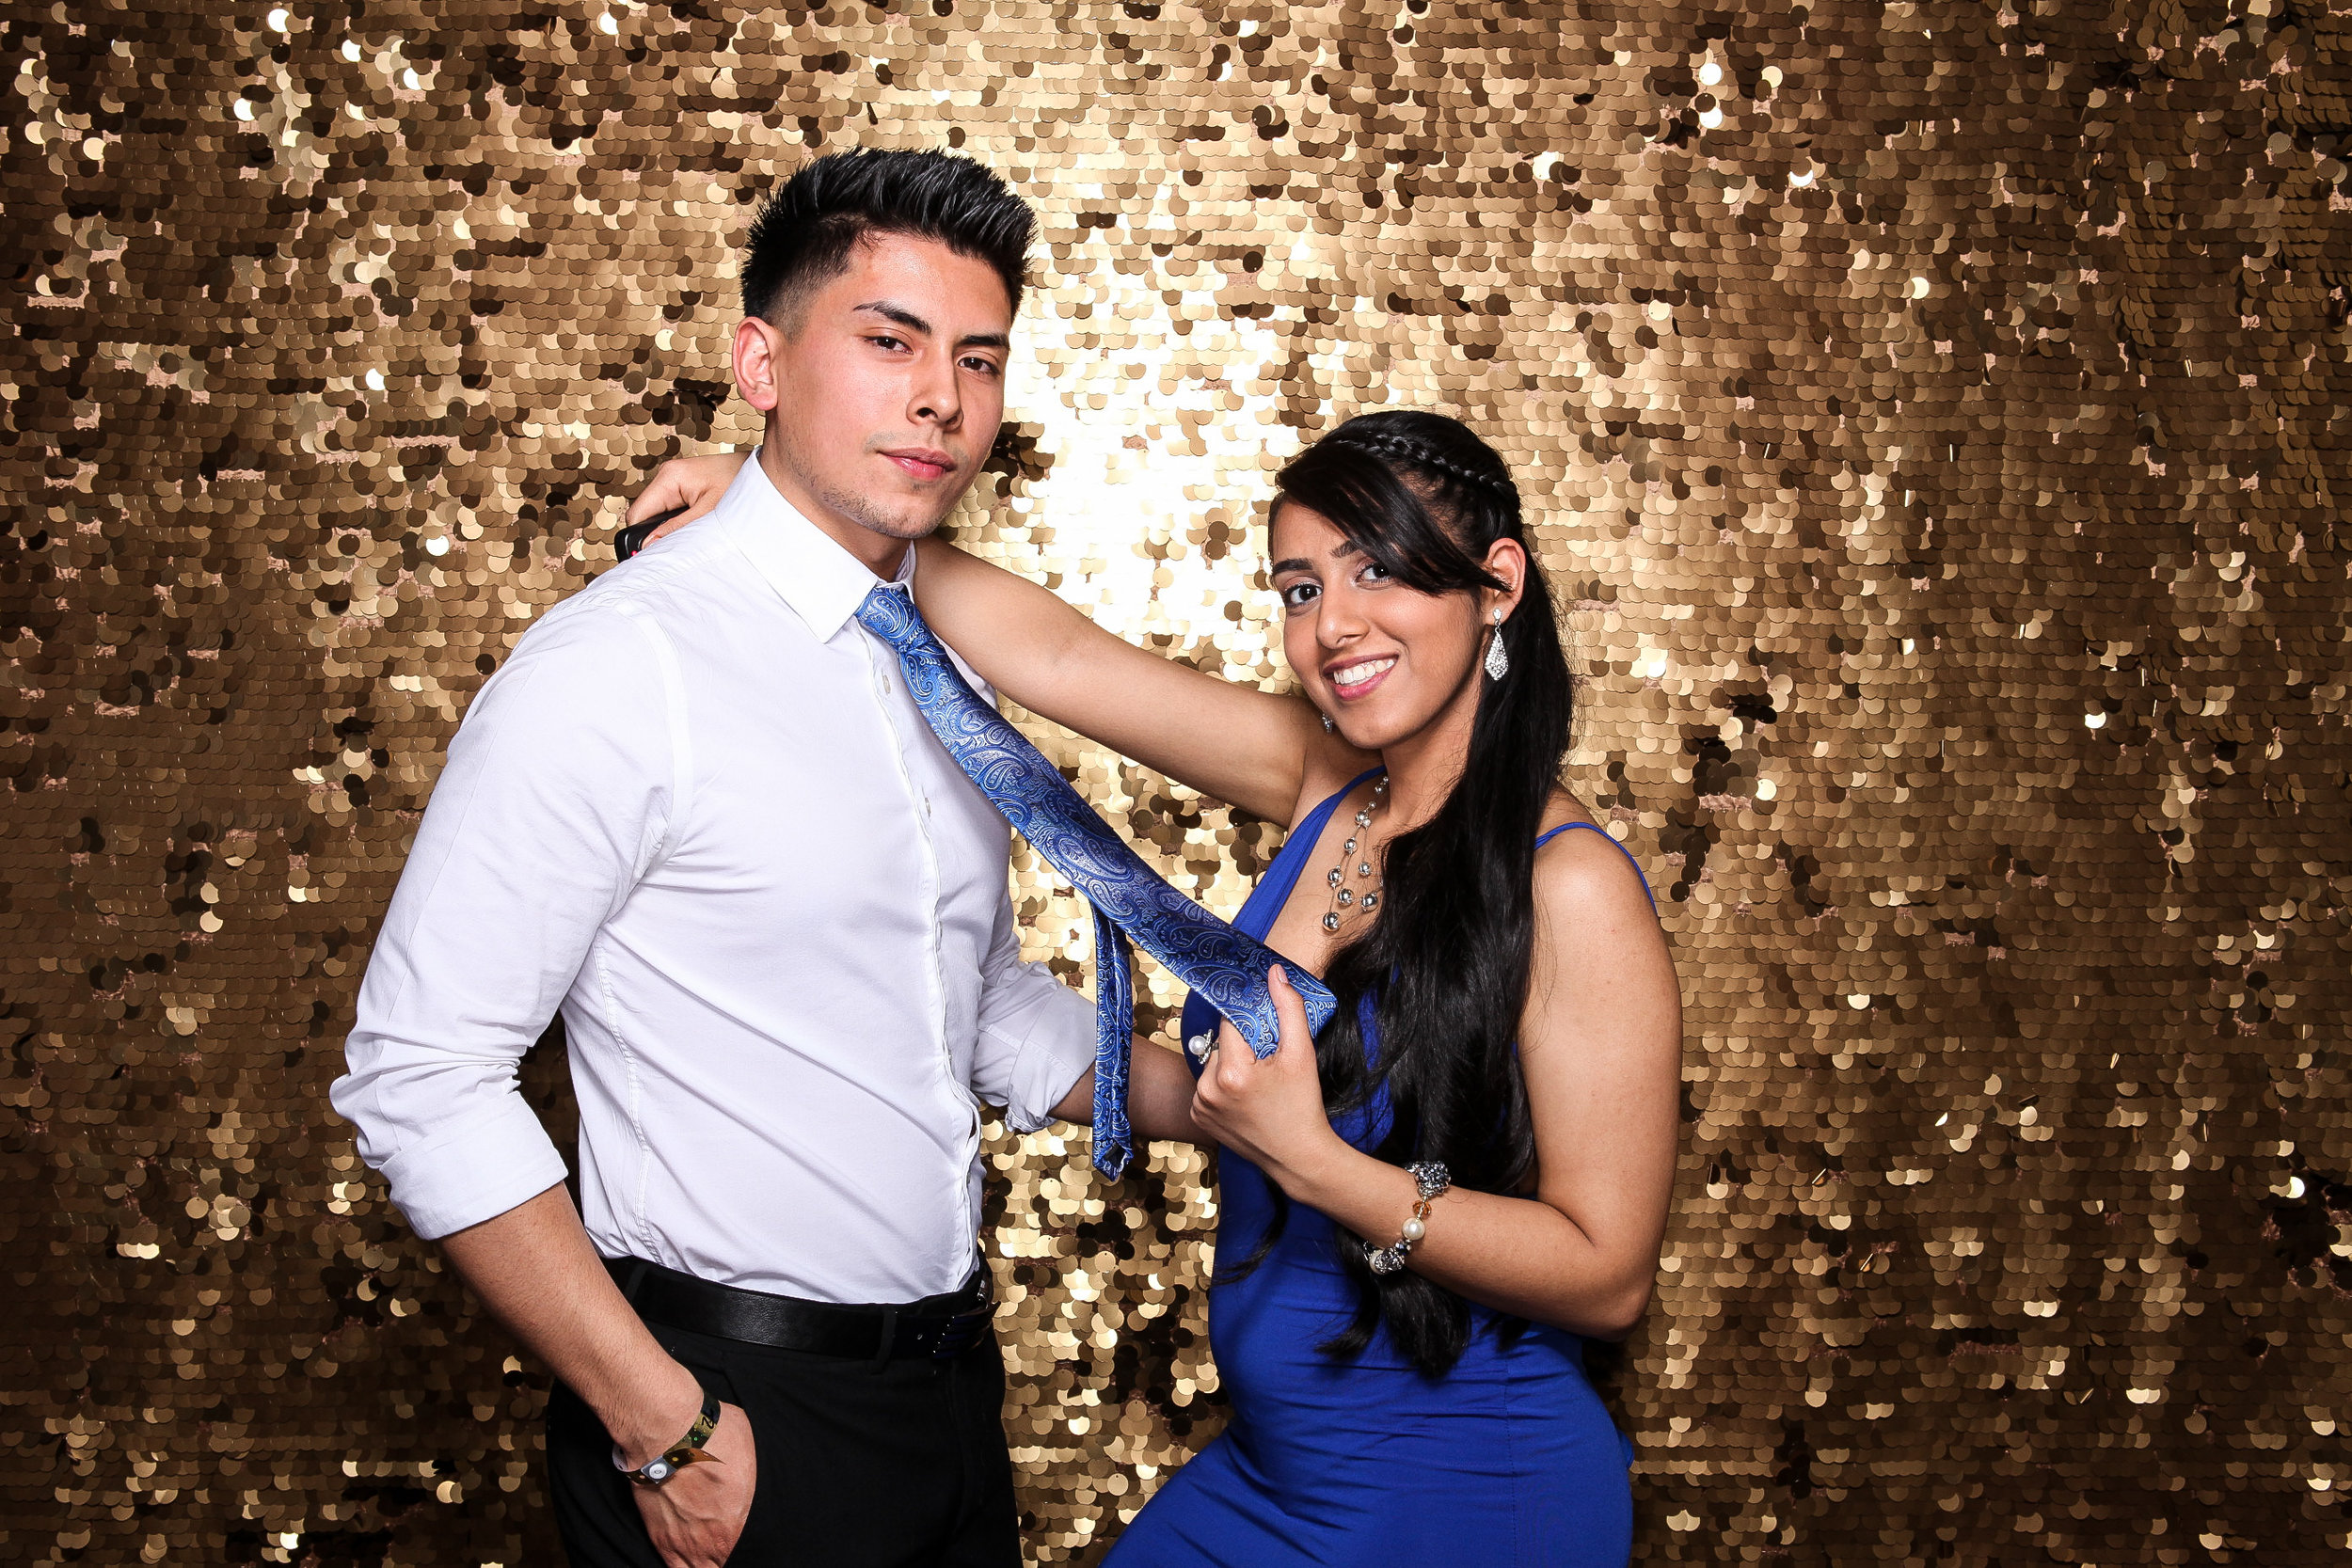 20190503_Adelphi_Senior_Formal-276.jpg